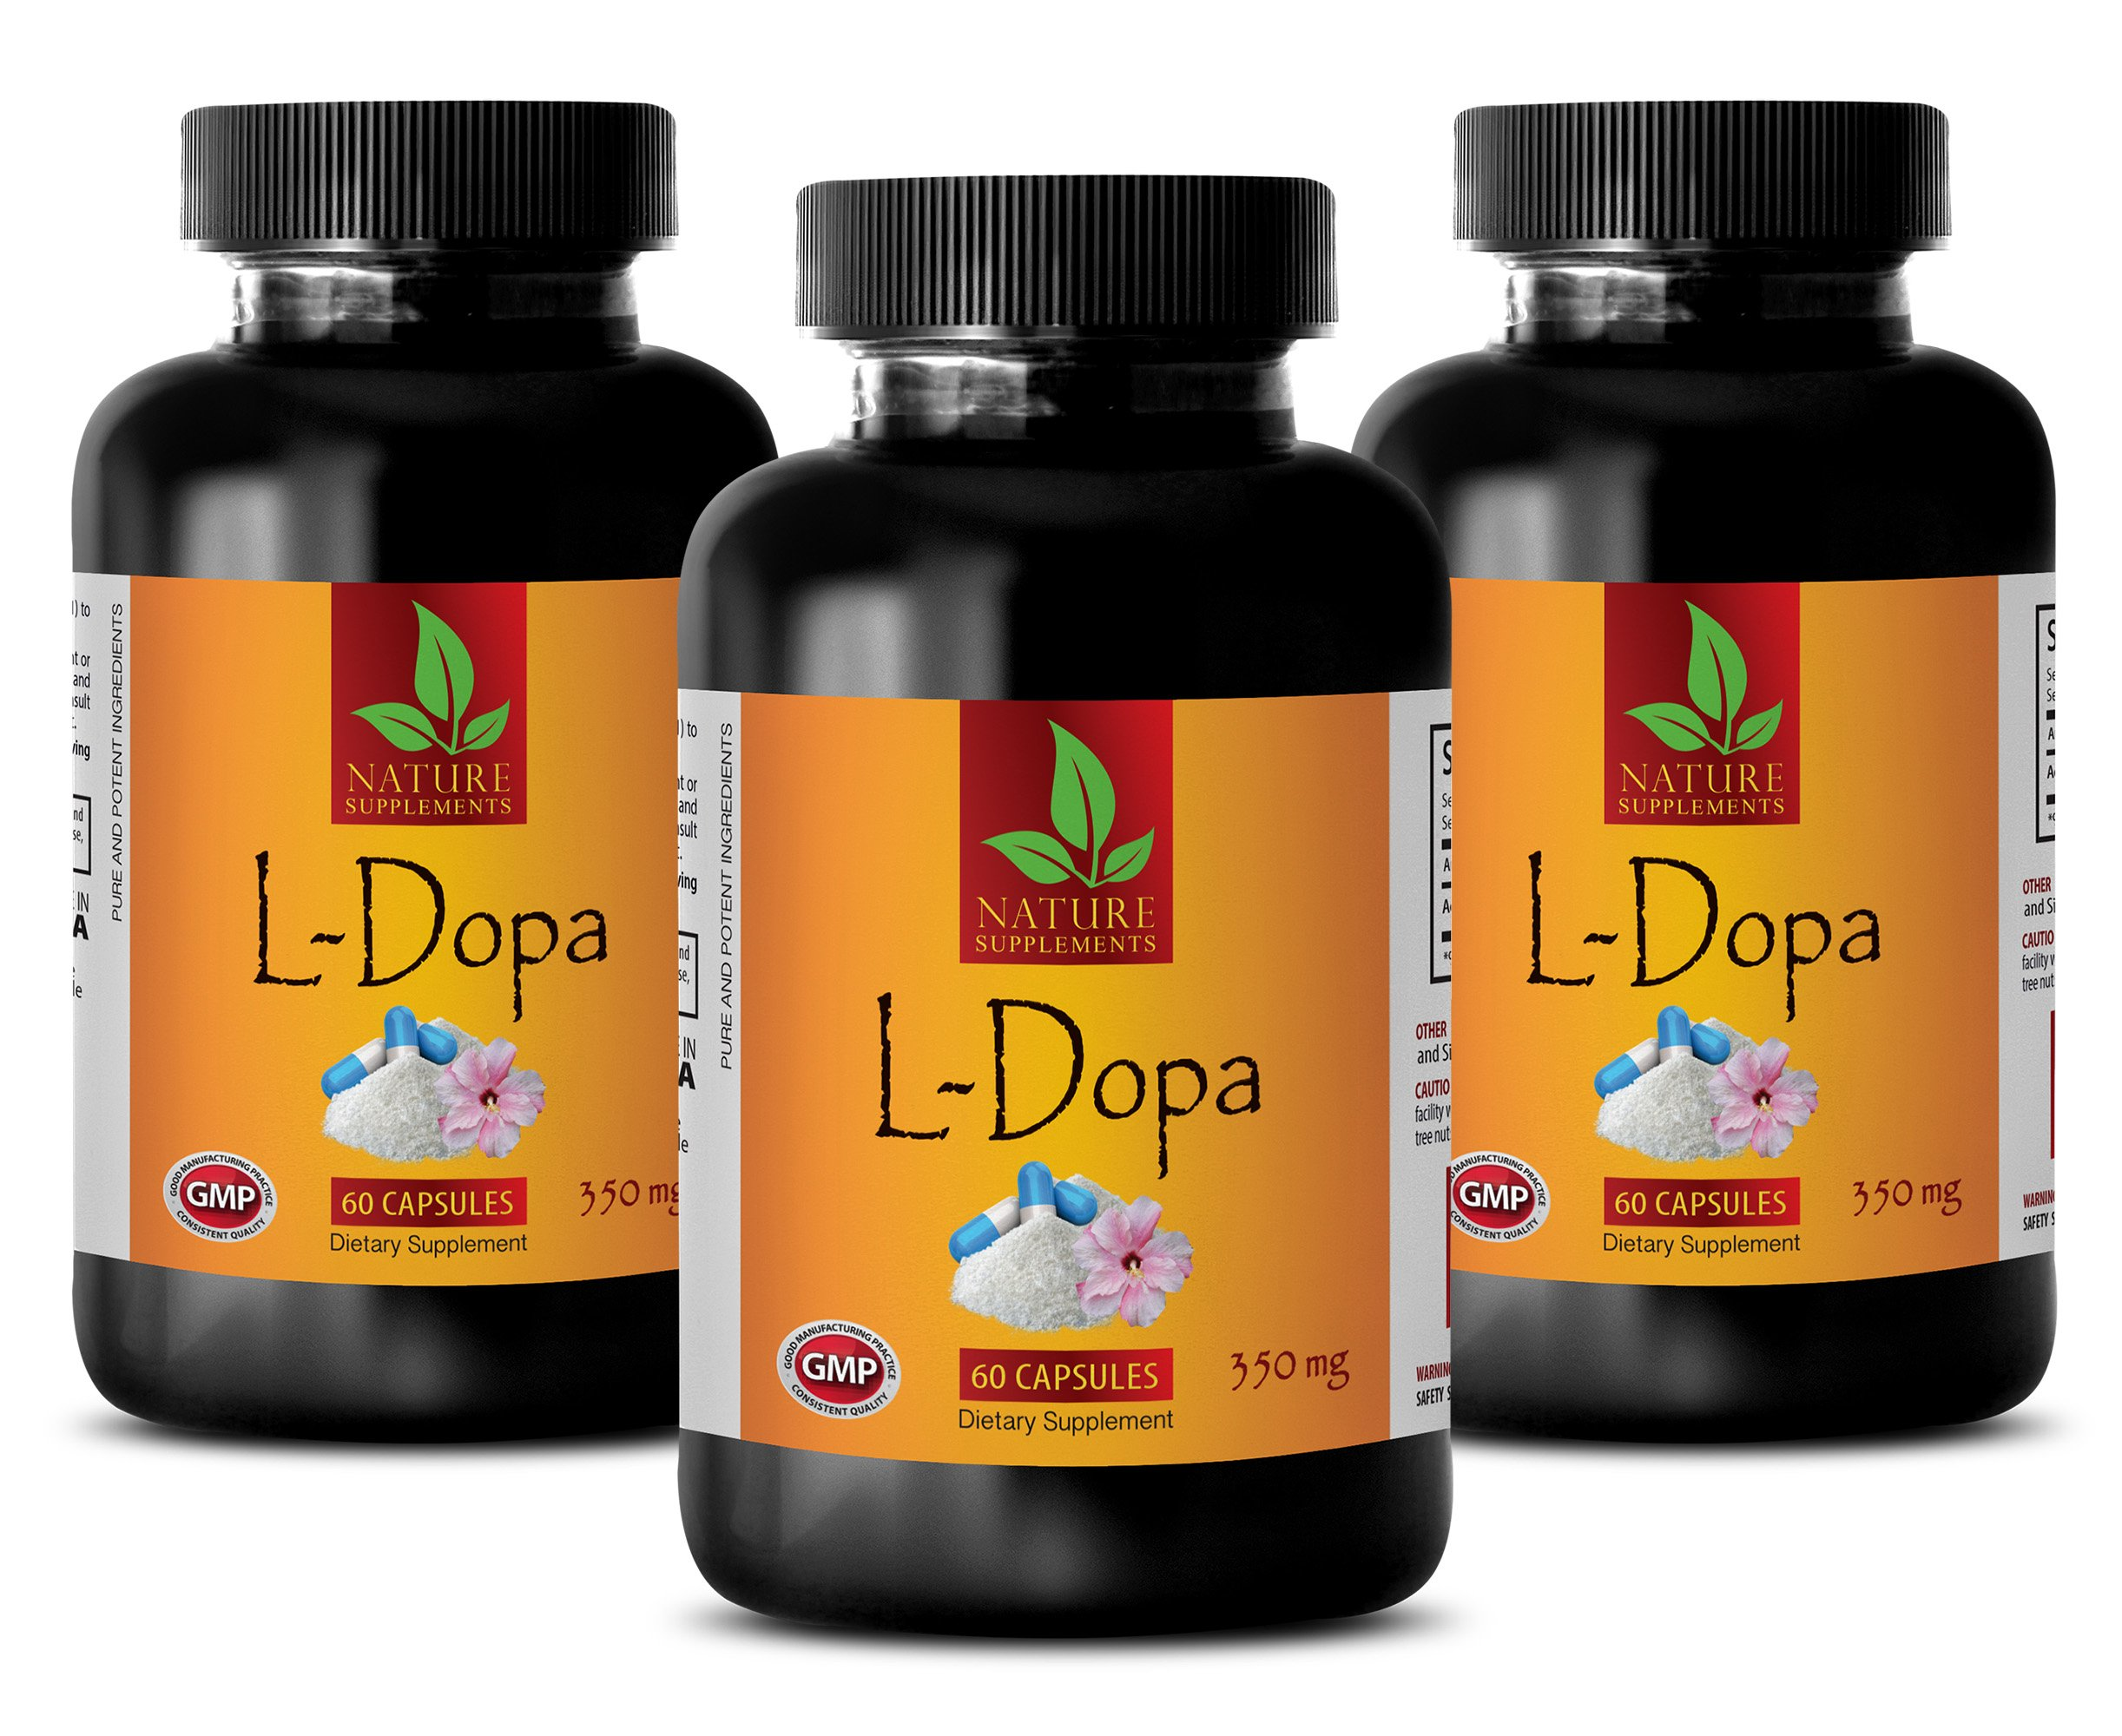 Mood Boosting probiotic - L-DOPA 350 MG - Dietary Supplement - dopa mucuna Now Foods - 3 Bottles (180 Capsules)